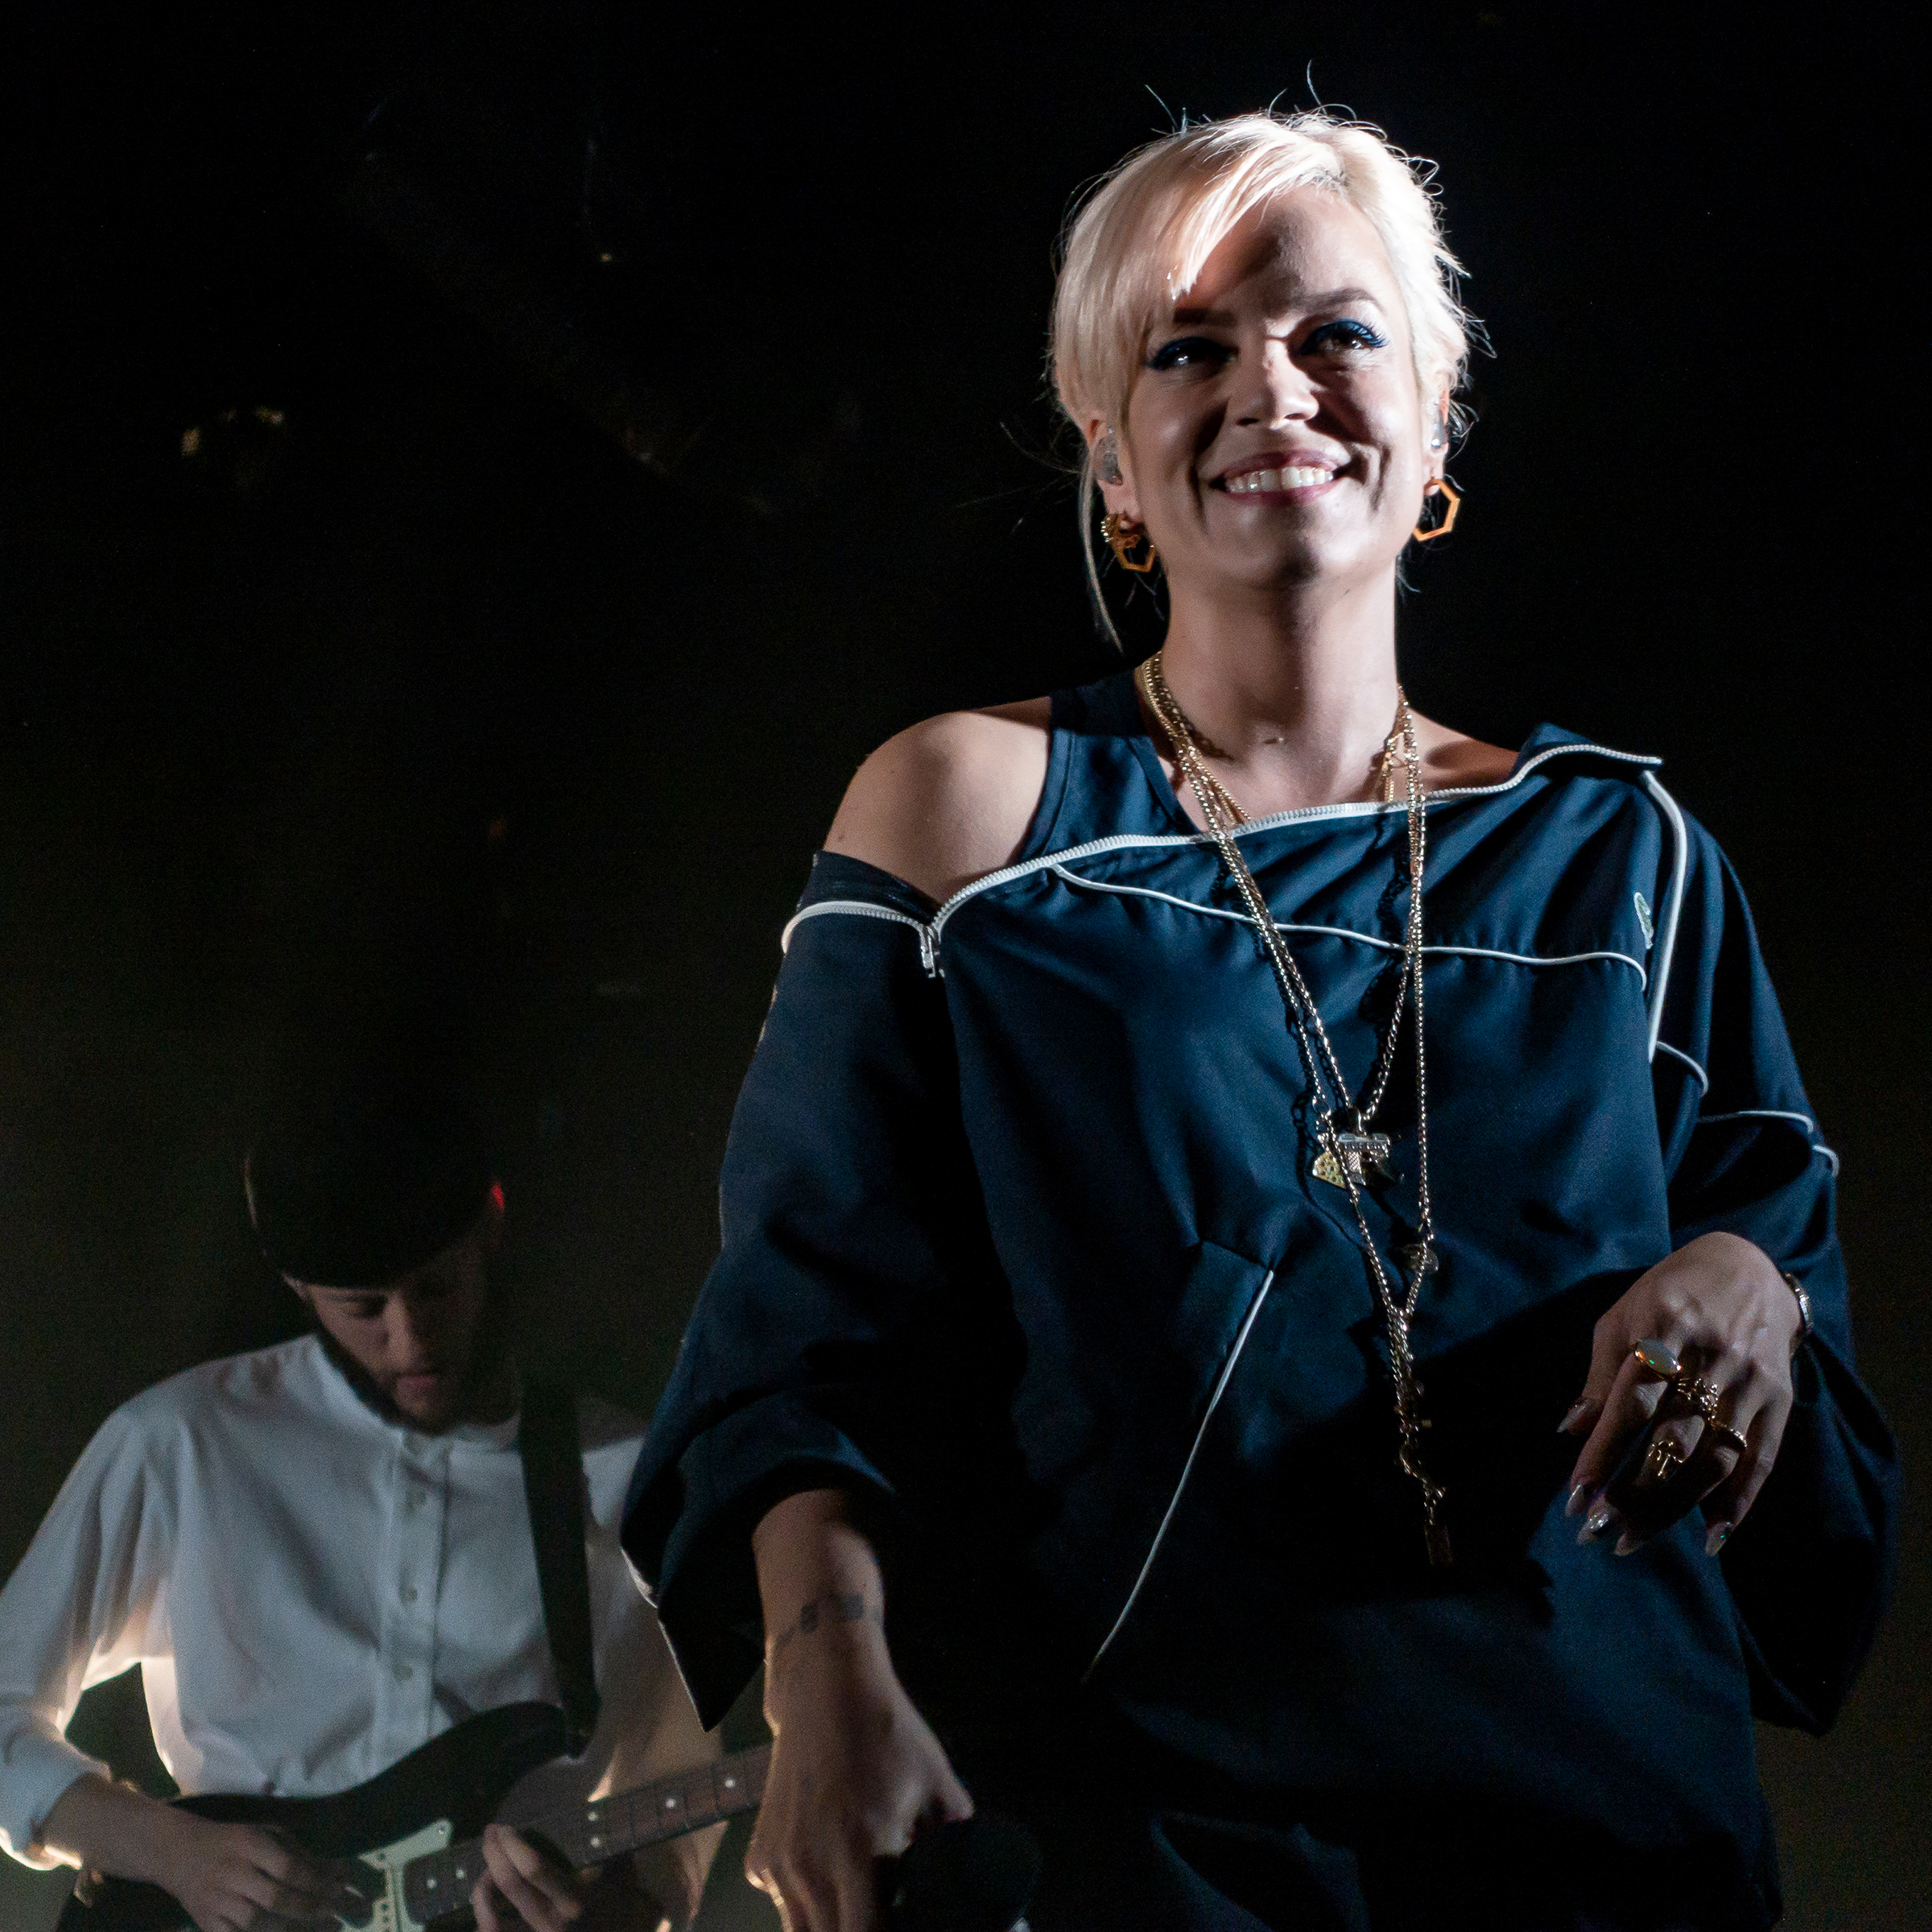 c1e00b28cb9e Lily Allen. From Wikipedia ...